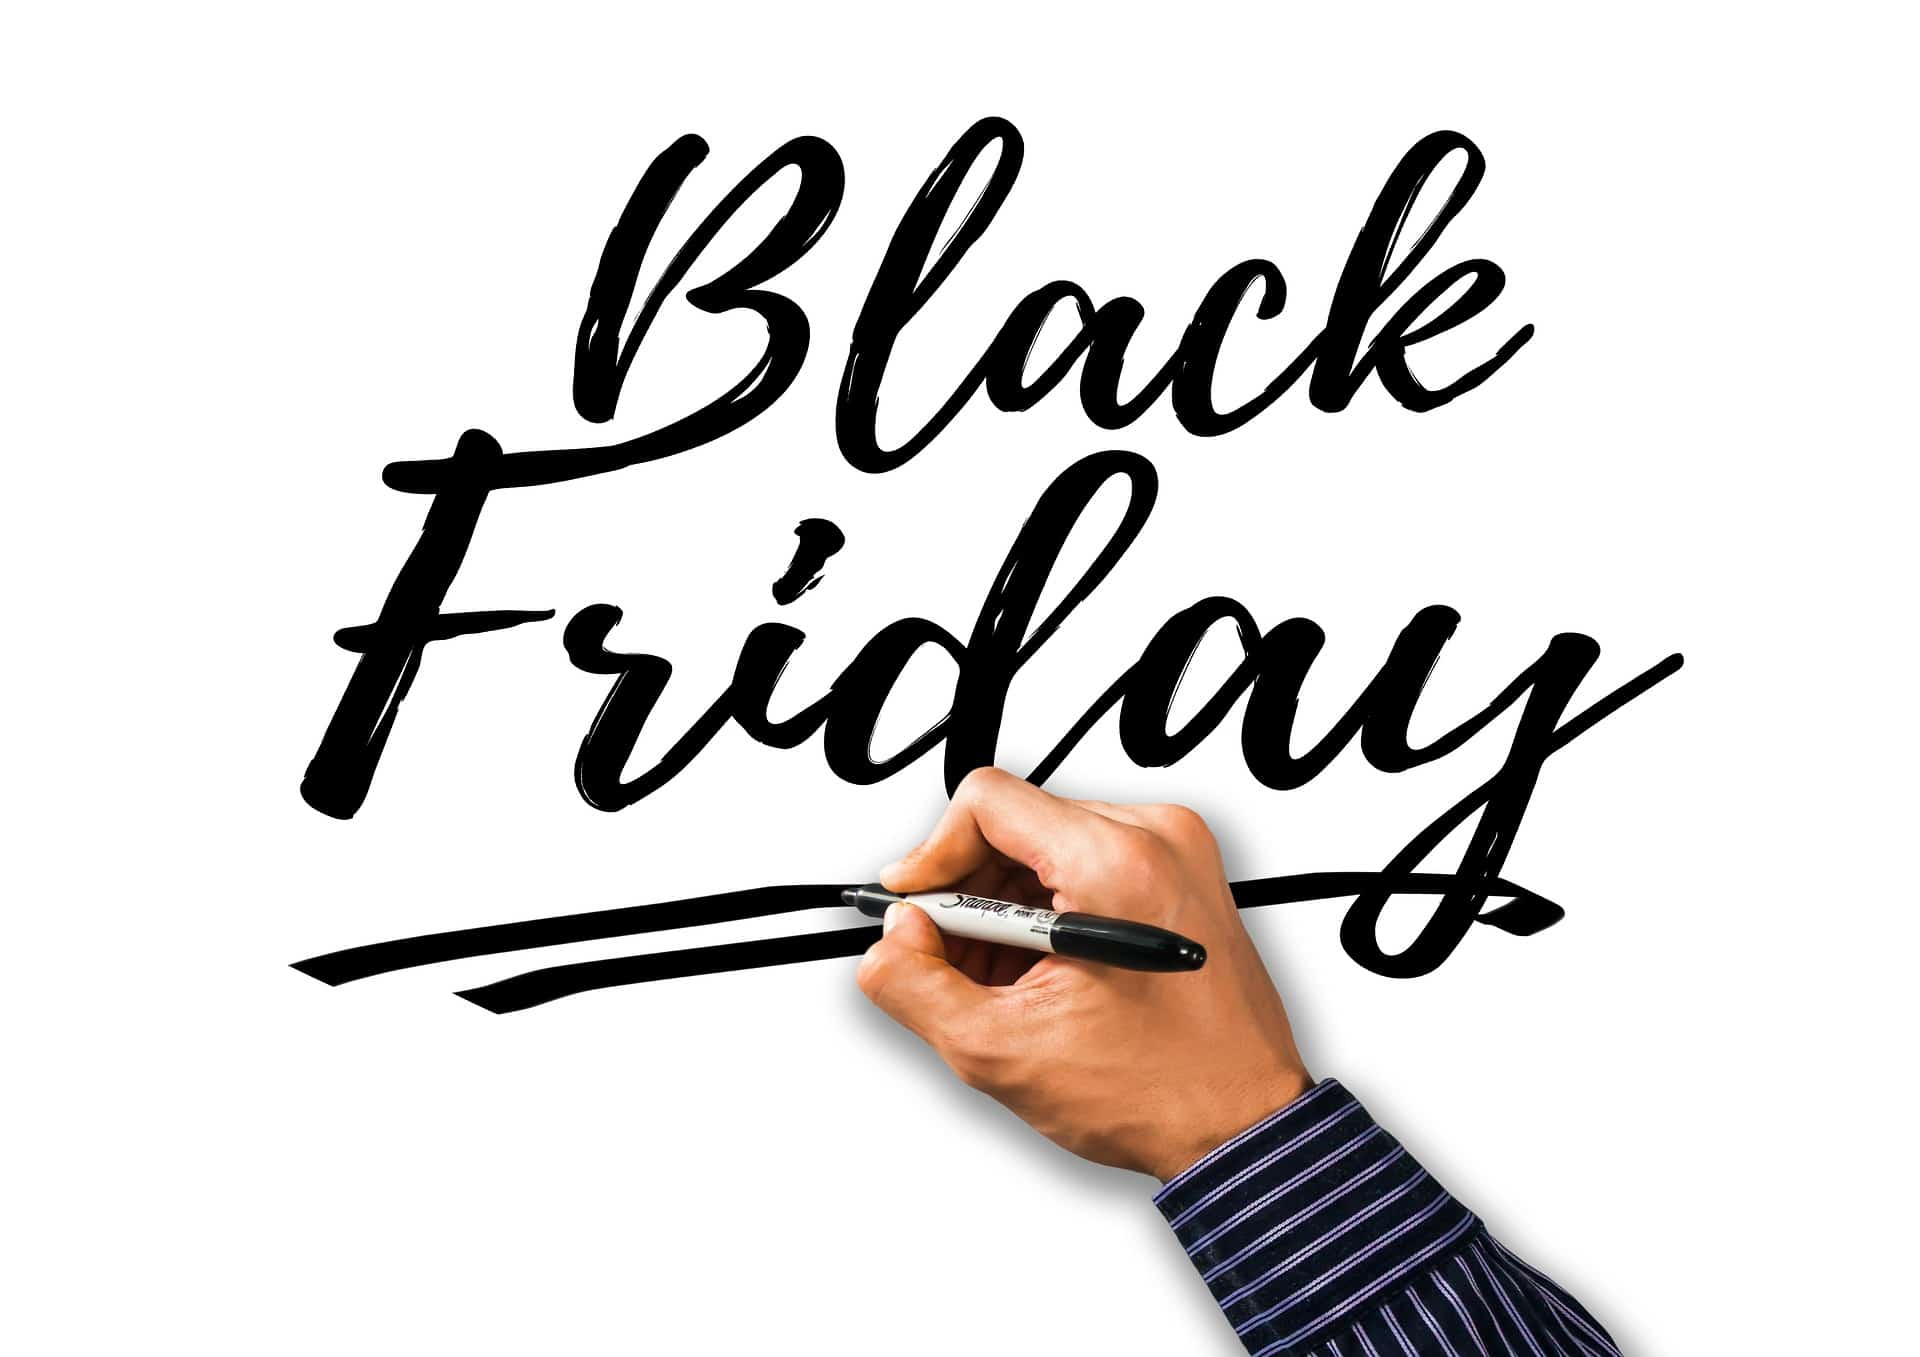 How to Create a Compelling Black Friday or Cyber Monday Promotion